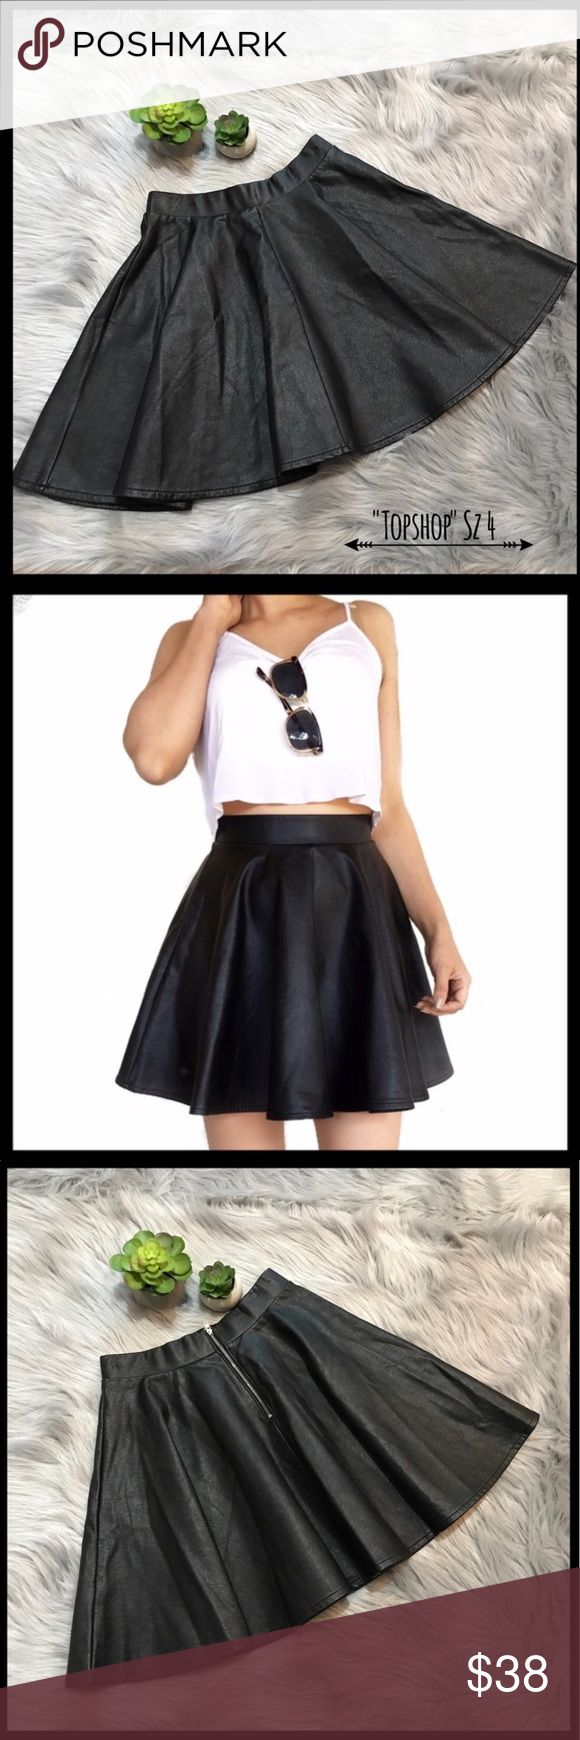 """Topshop faux leather skater skirt As new size 4 faux leather skater skirt measurement 13""""flat lay waist and 17""""length Skirts Mini"""